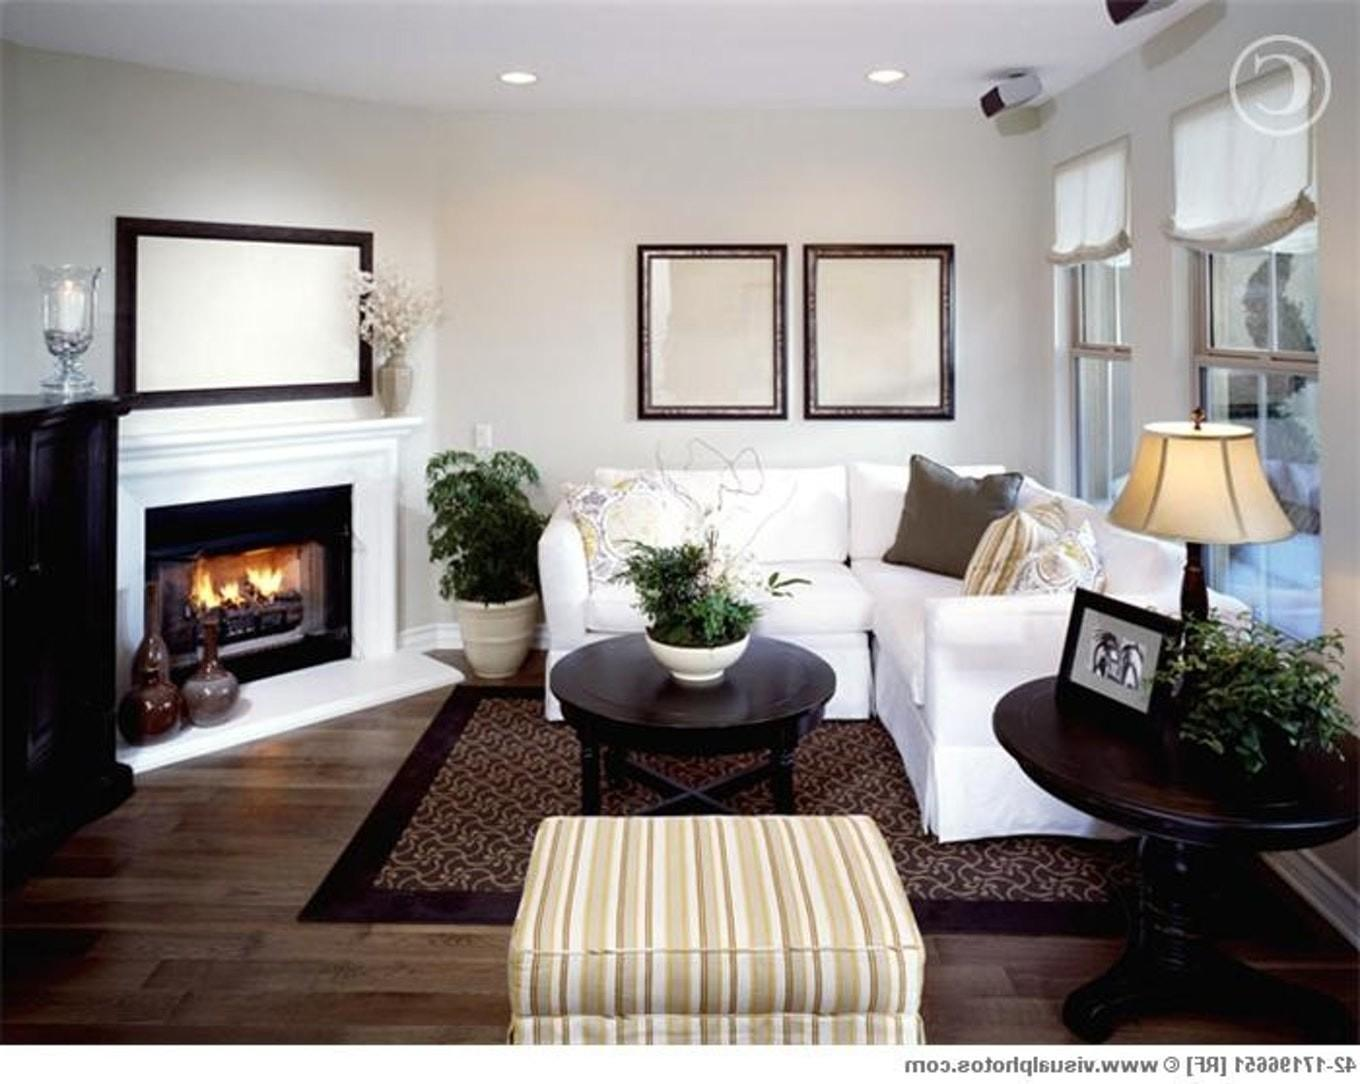 Image of: 32 Mesmerizing Corner Decorating Ideas Living Rooms That You Ll Fall In Love With Them Photo Gallery Decoratorist